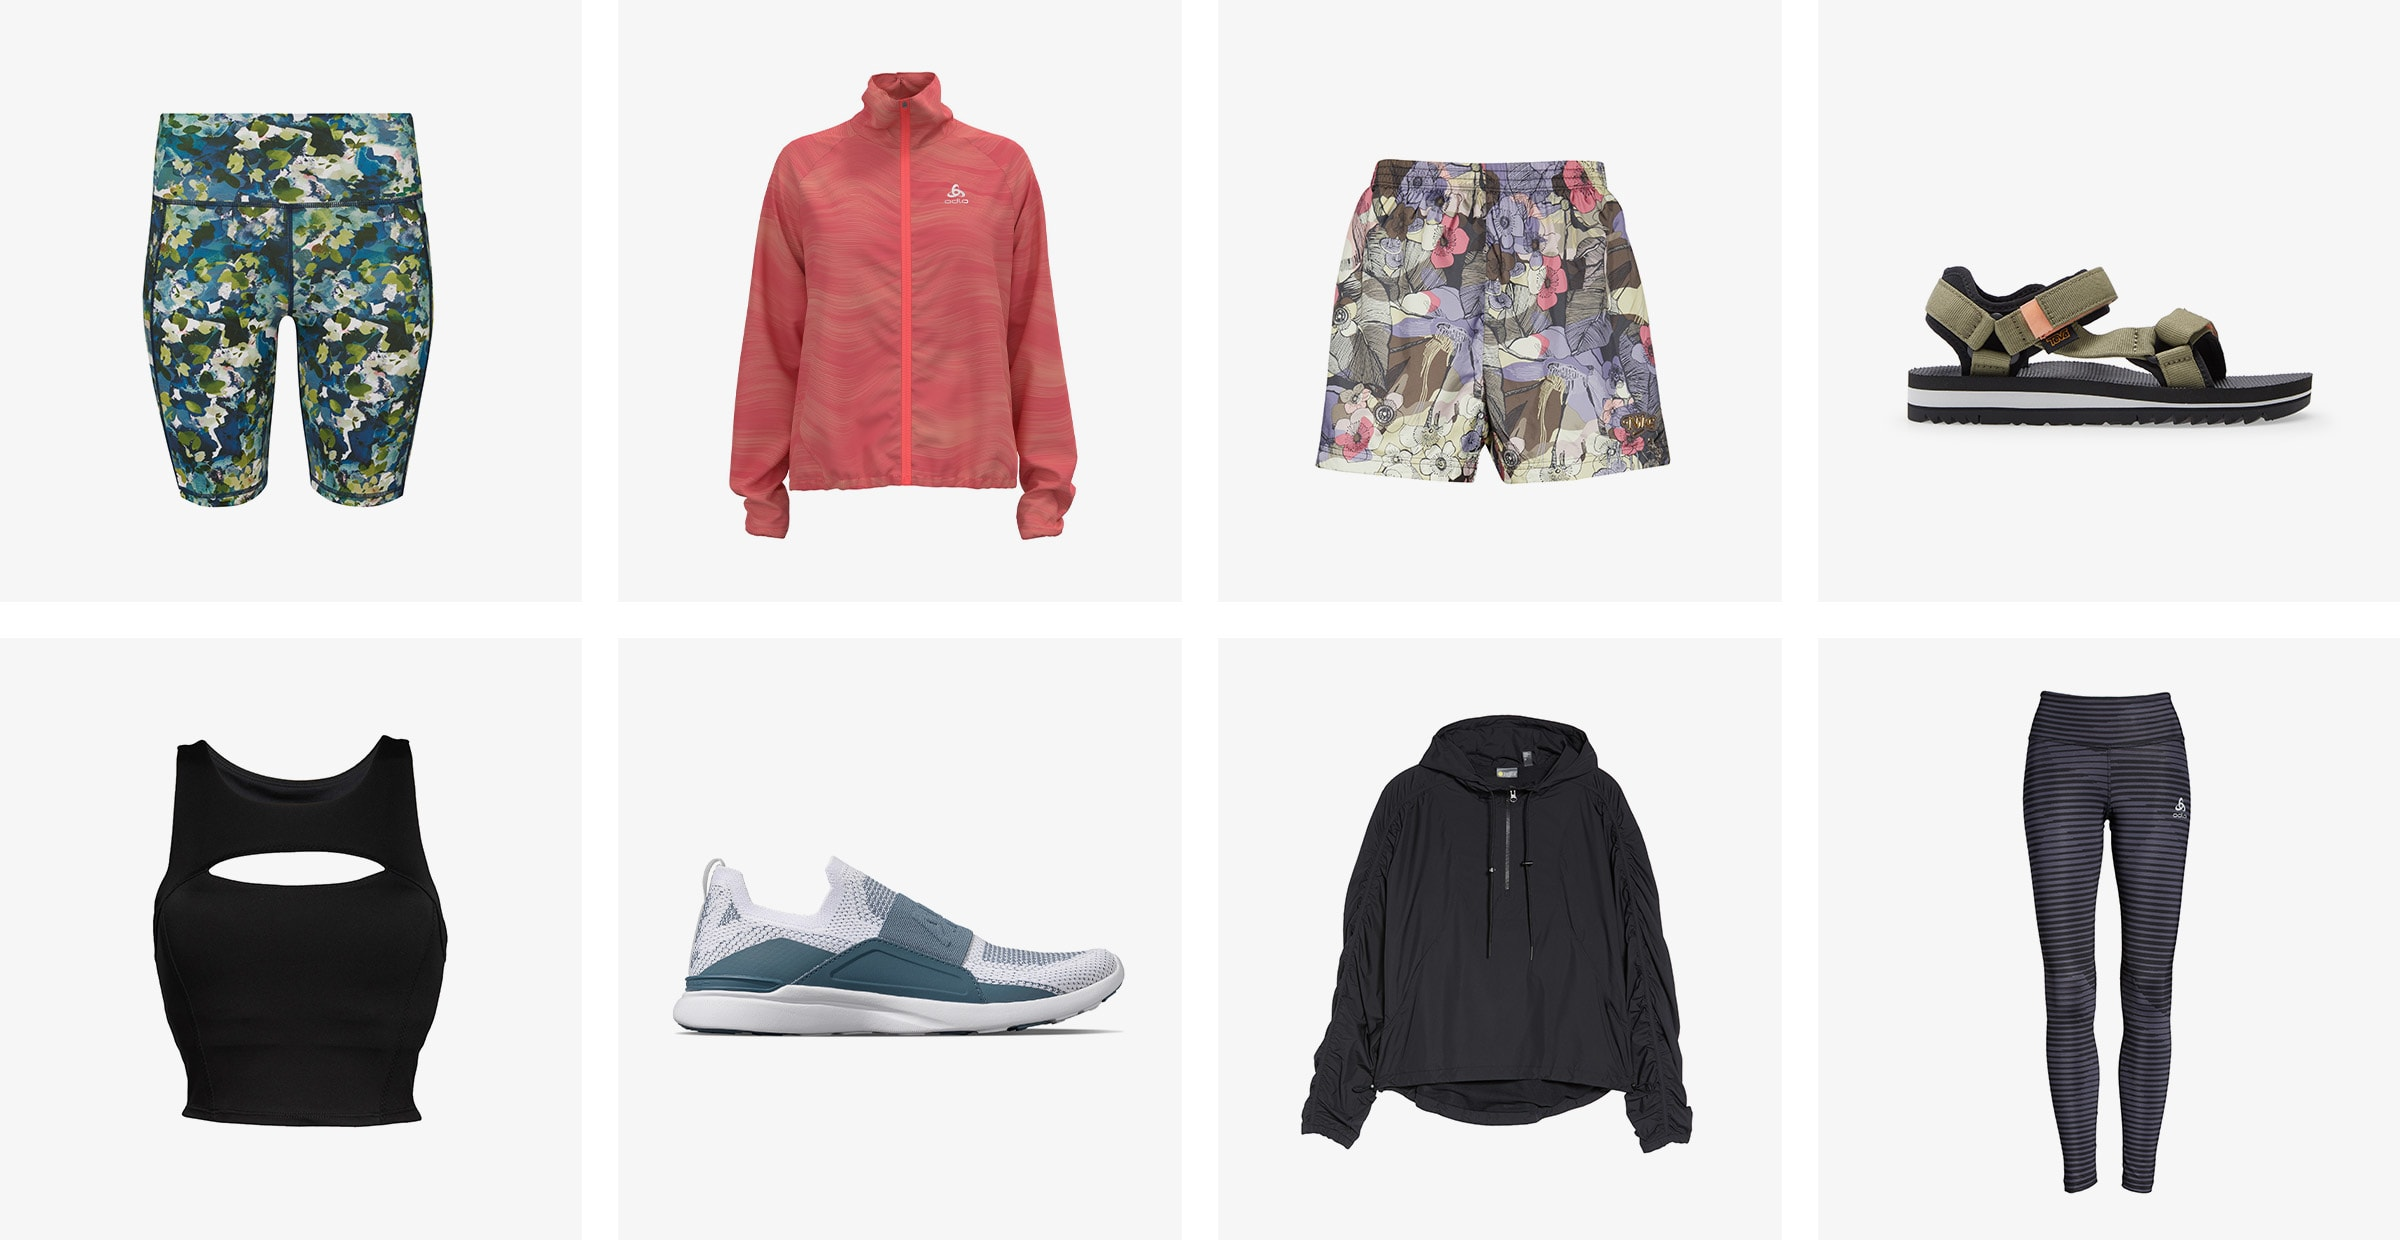 Foral bike shorts, a red windbreaker, multicolored shorts, green sandals, a black longline sports bra, blue running shoes and a black hoodie.